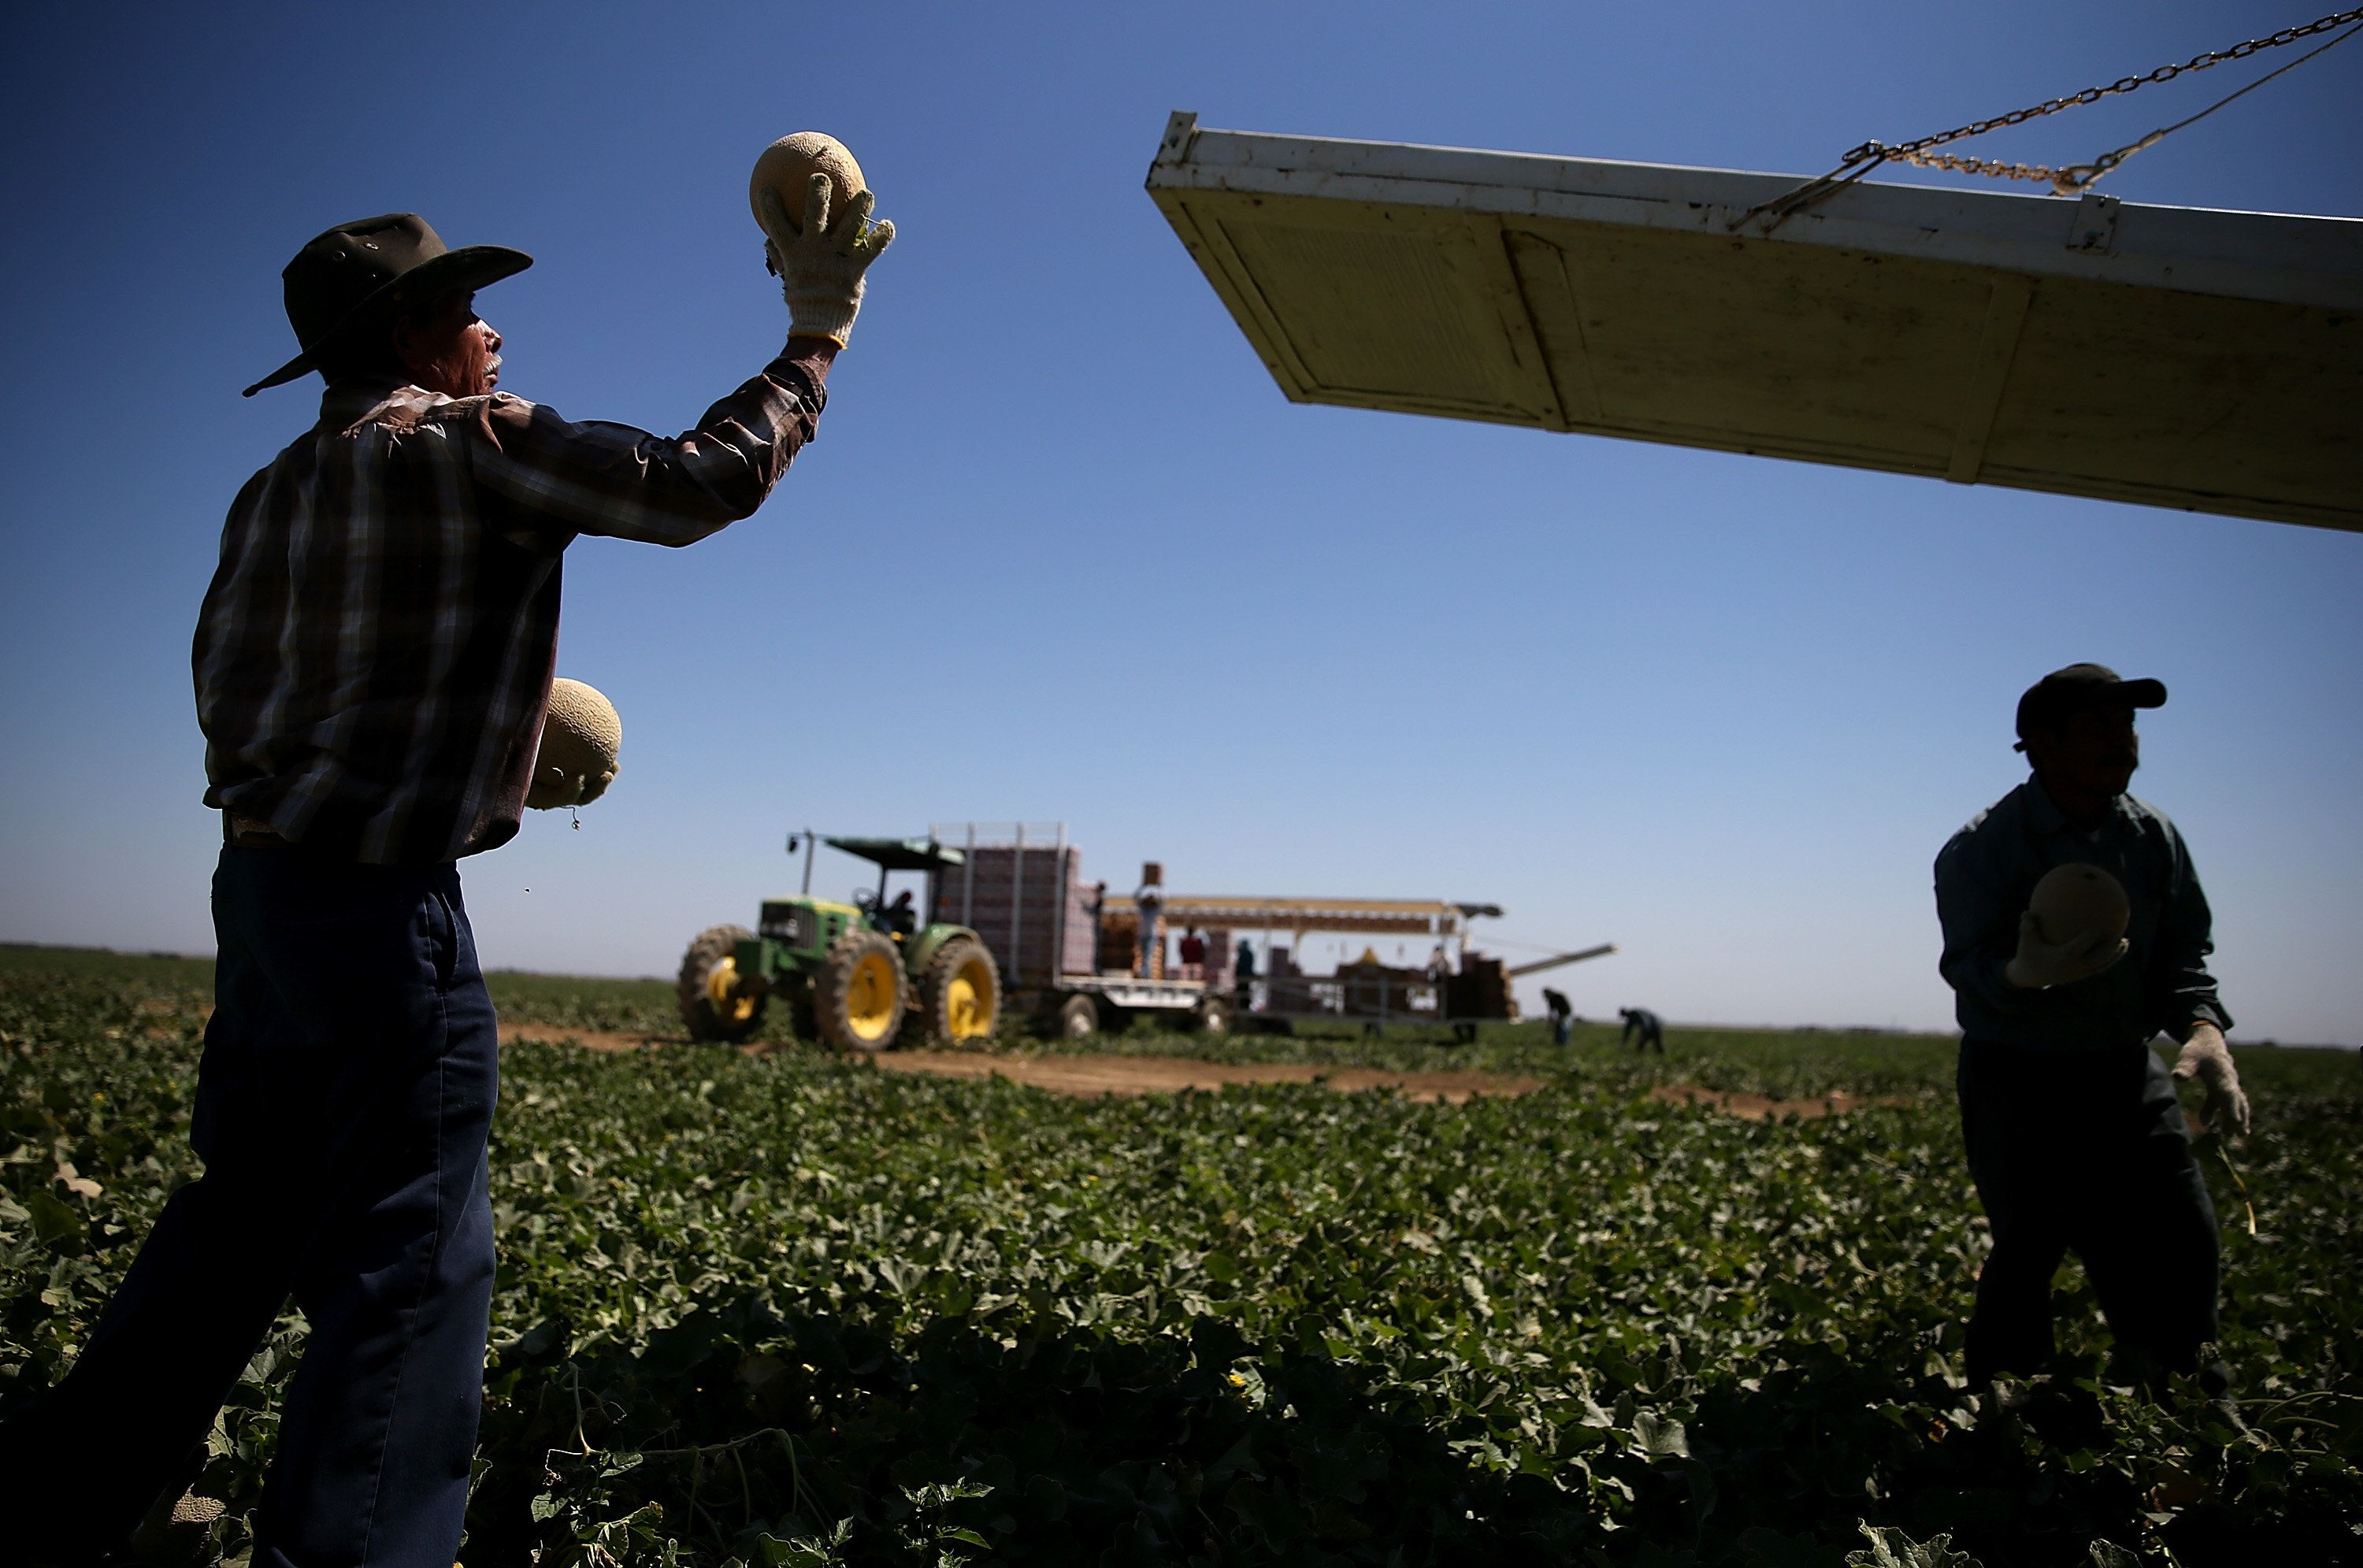 A worker harvests cantaloupes on a farm near Firebaugh, California. Central Valley provides much of the nation's fresh produc